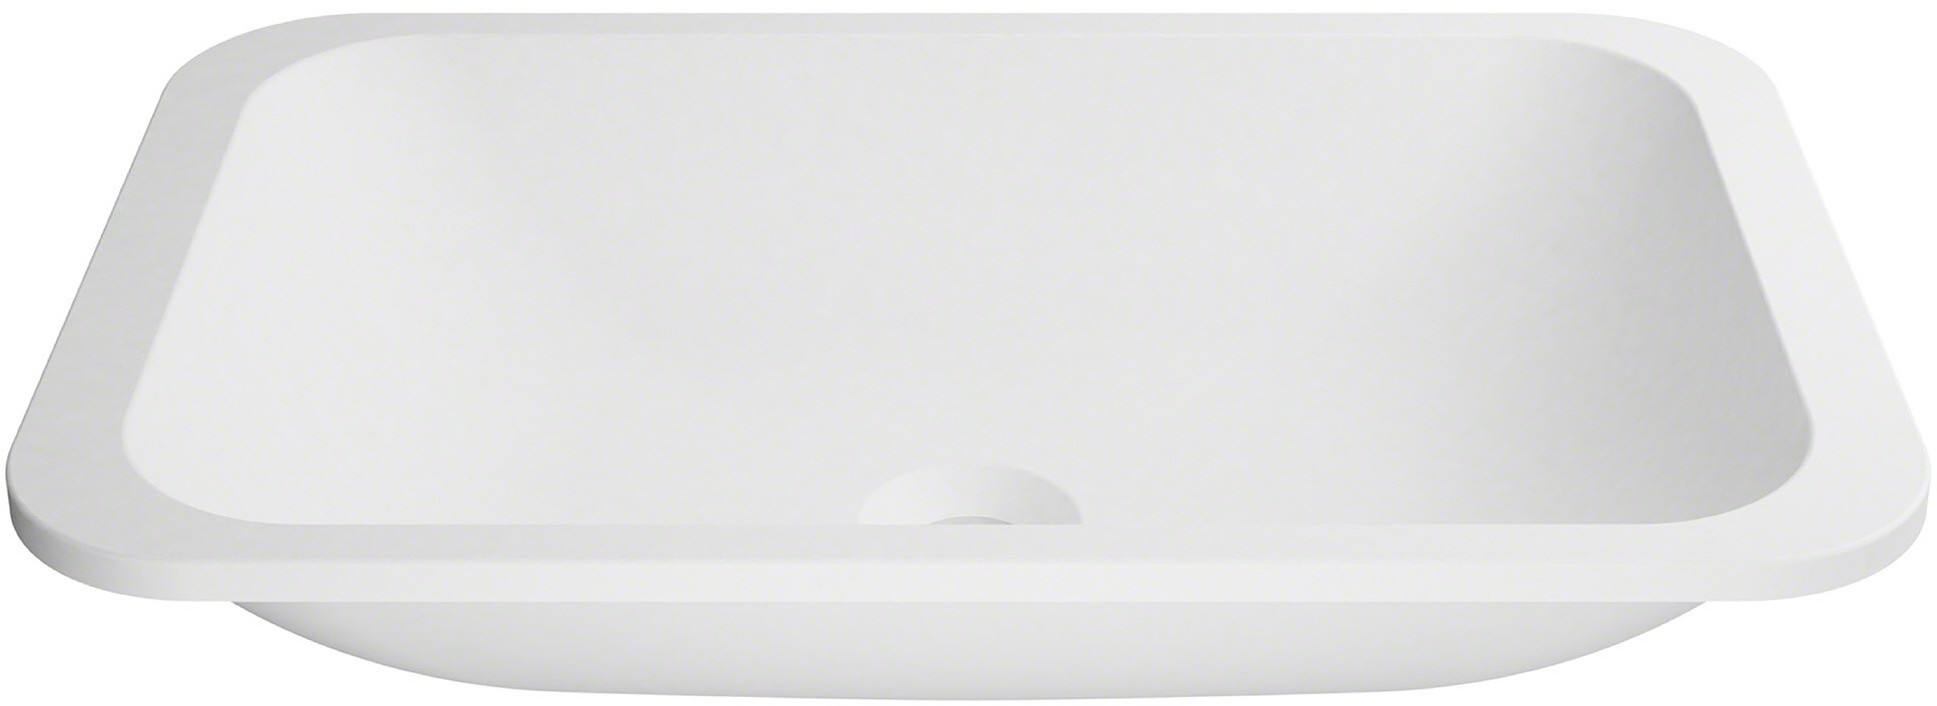 Kraus Ksu8mw Rectangle Undermount Bathroom Sink With Nano Coating Technology Highly Resilient Material And Naturally Hygienic